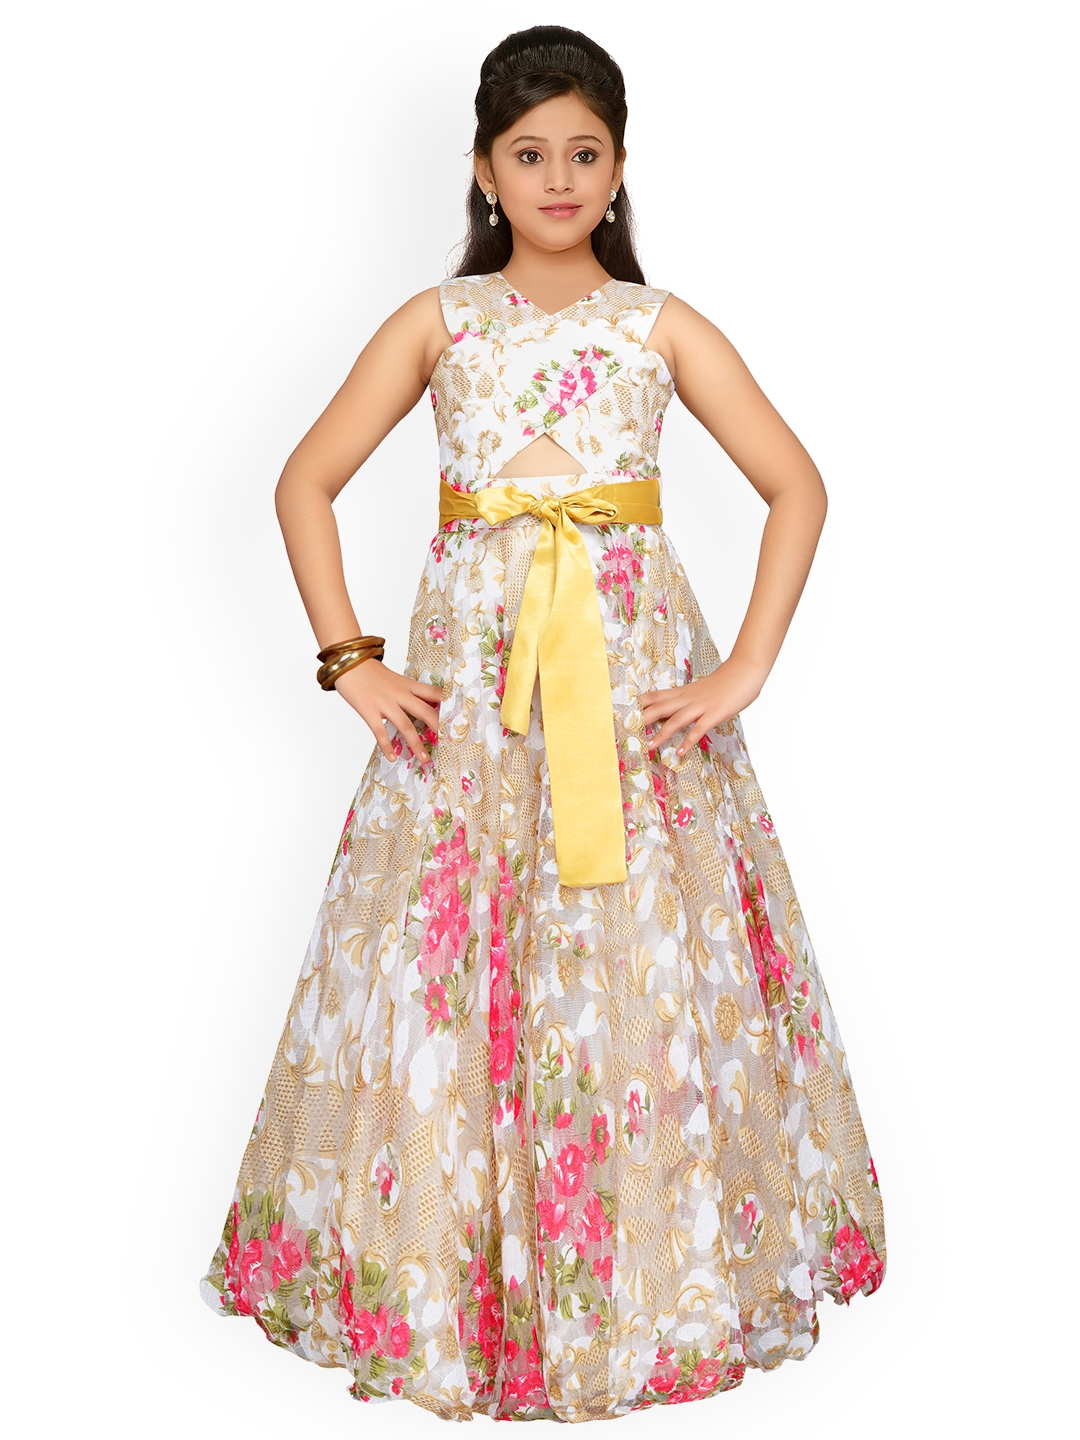 09805cb6a13 Buy ADIVA Girls Beige Printed Maxi Dress - Dresses for Girls 6936097 ...